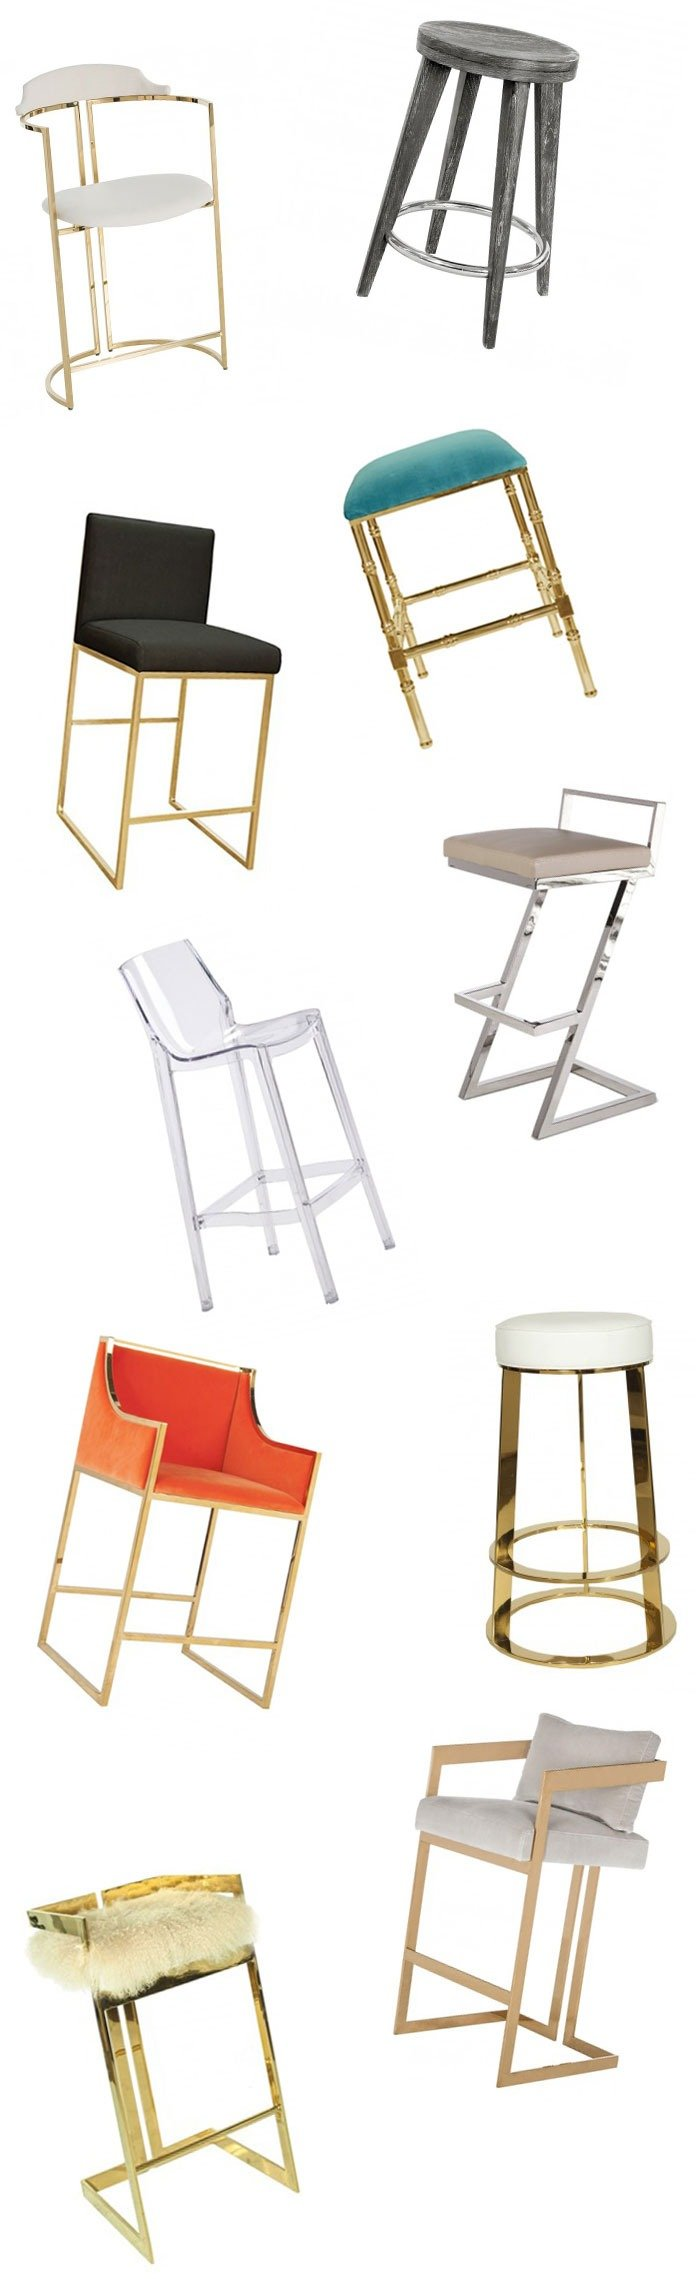 Strange Chic Counter Stools And Barstools Our Top 10 List The Uwap Interior Chair Design Uwaporg